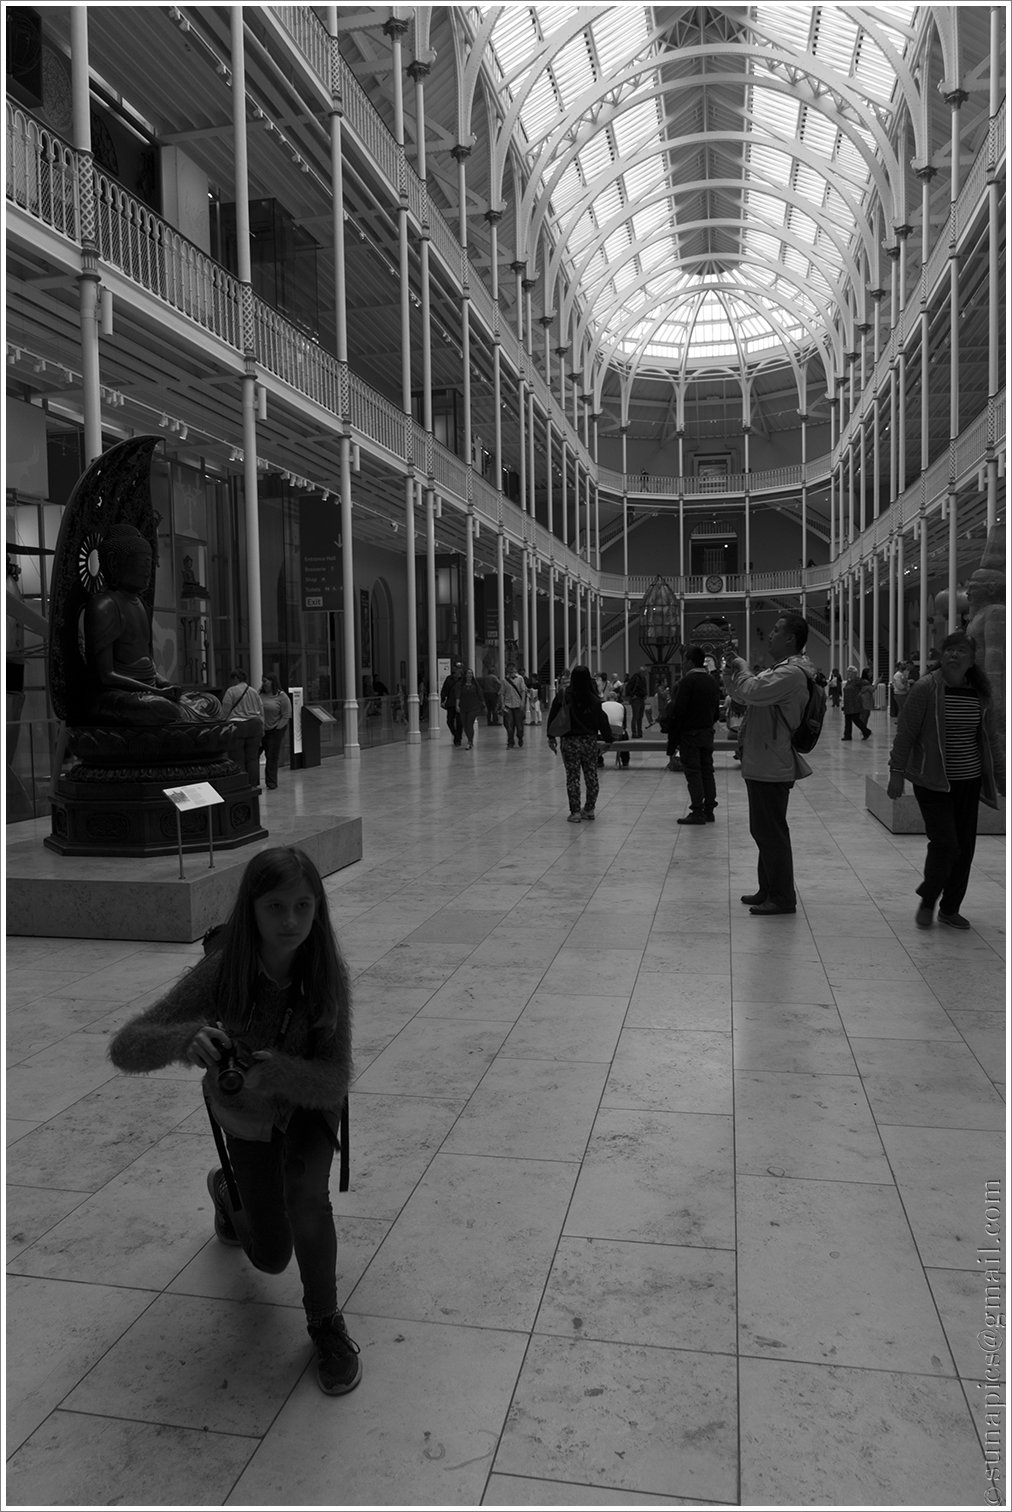 So we adjourned to the museum in chambers street where i taught mair the theory of composing photos mostly by showing her what not to do i m afraid